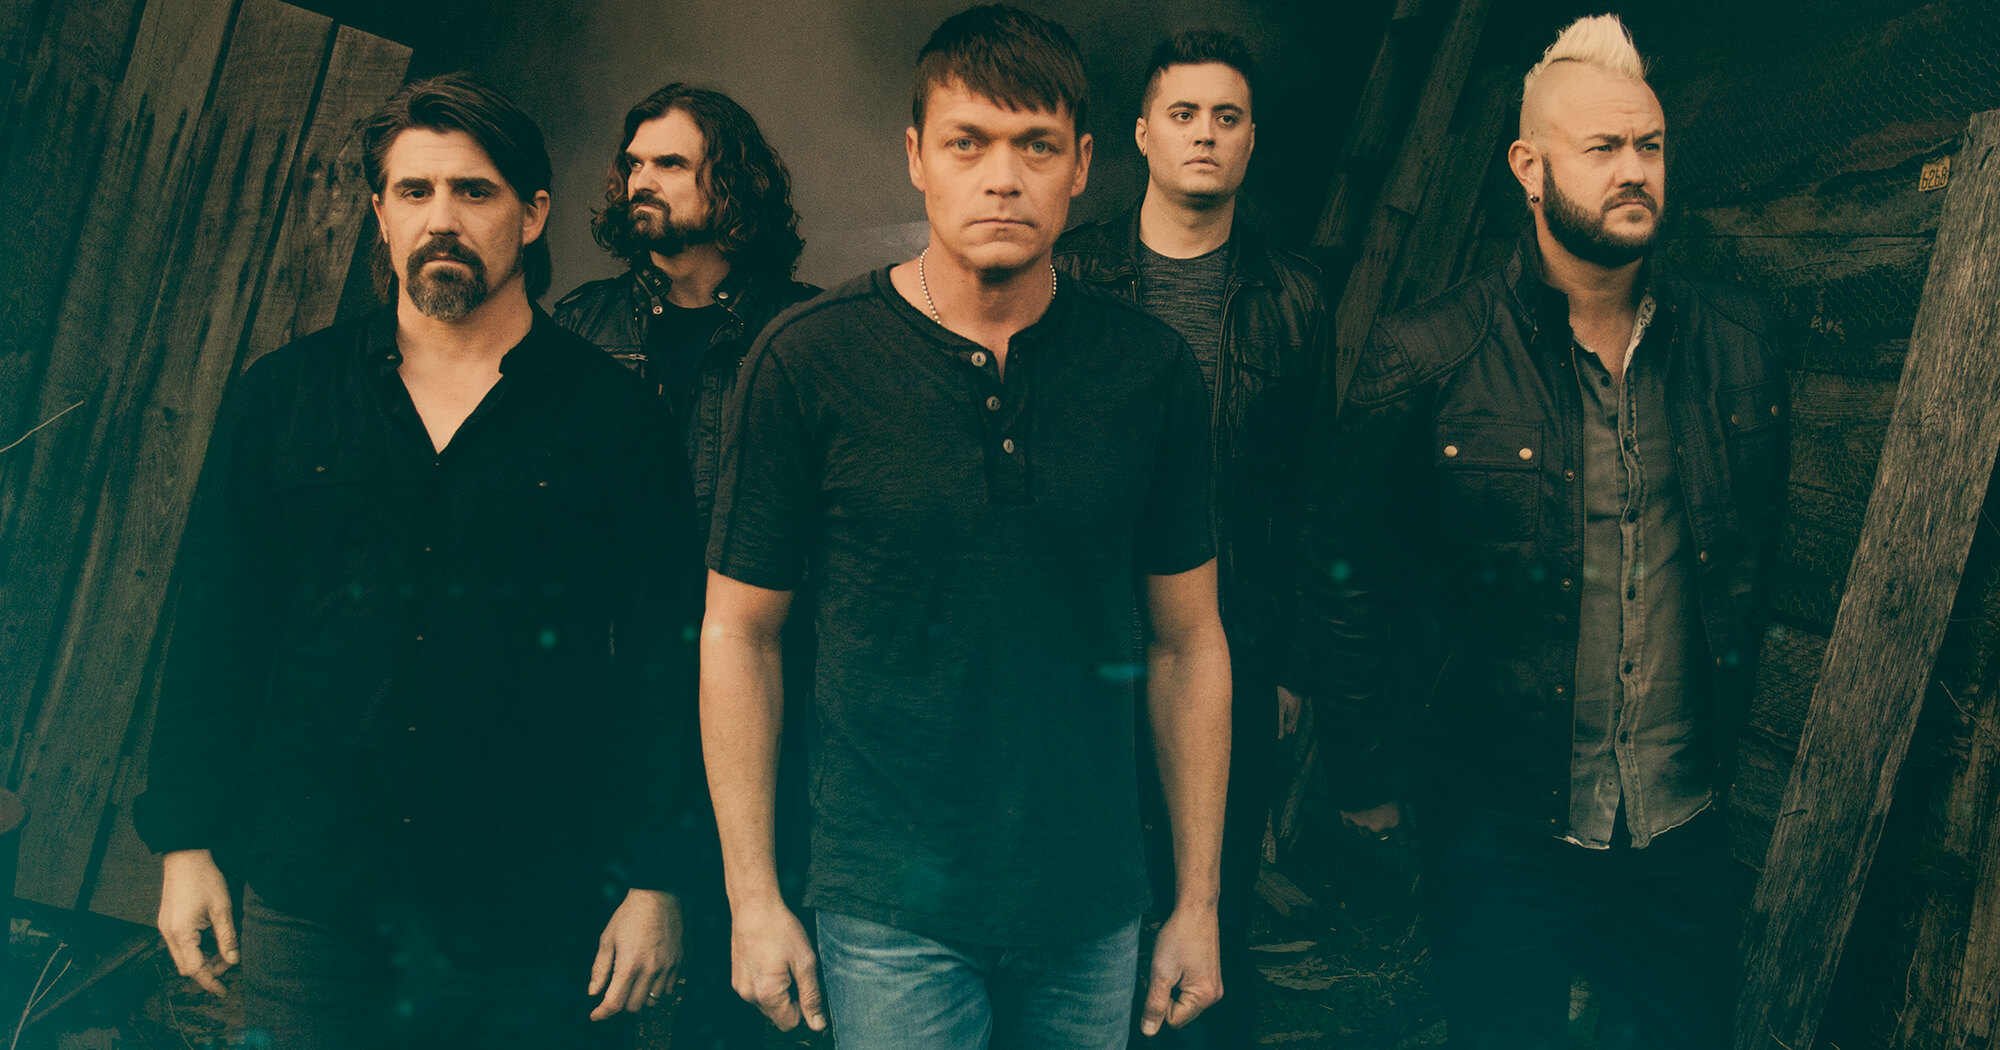 3 Doors Down will perform at the Annual Festival of the Lakes (Hammond, Indiana) on Thursday, July 18, 2019